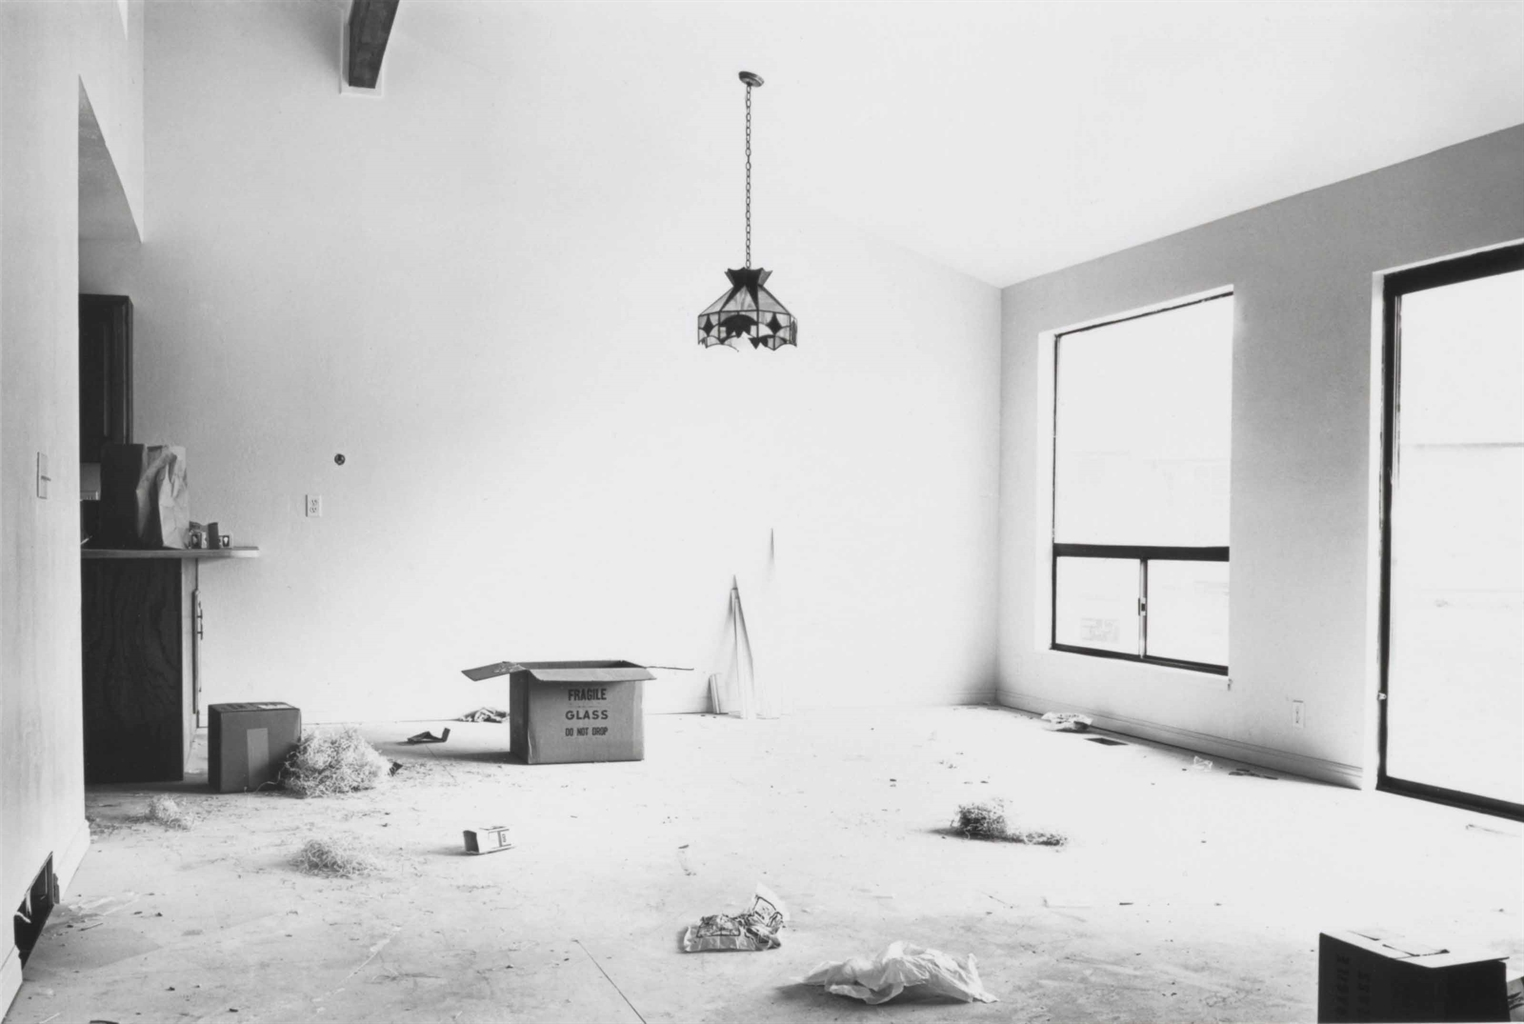 Lewis Baltz-Park City #100-1979